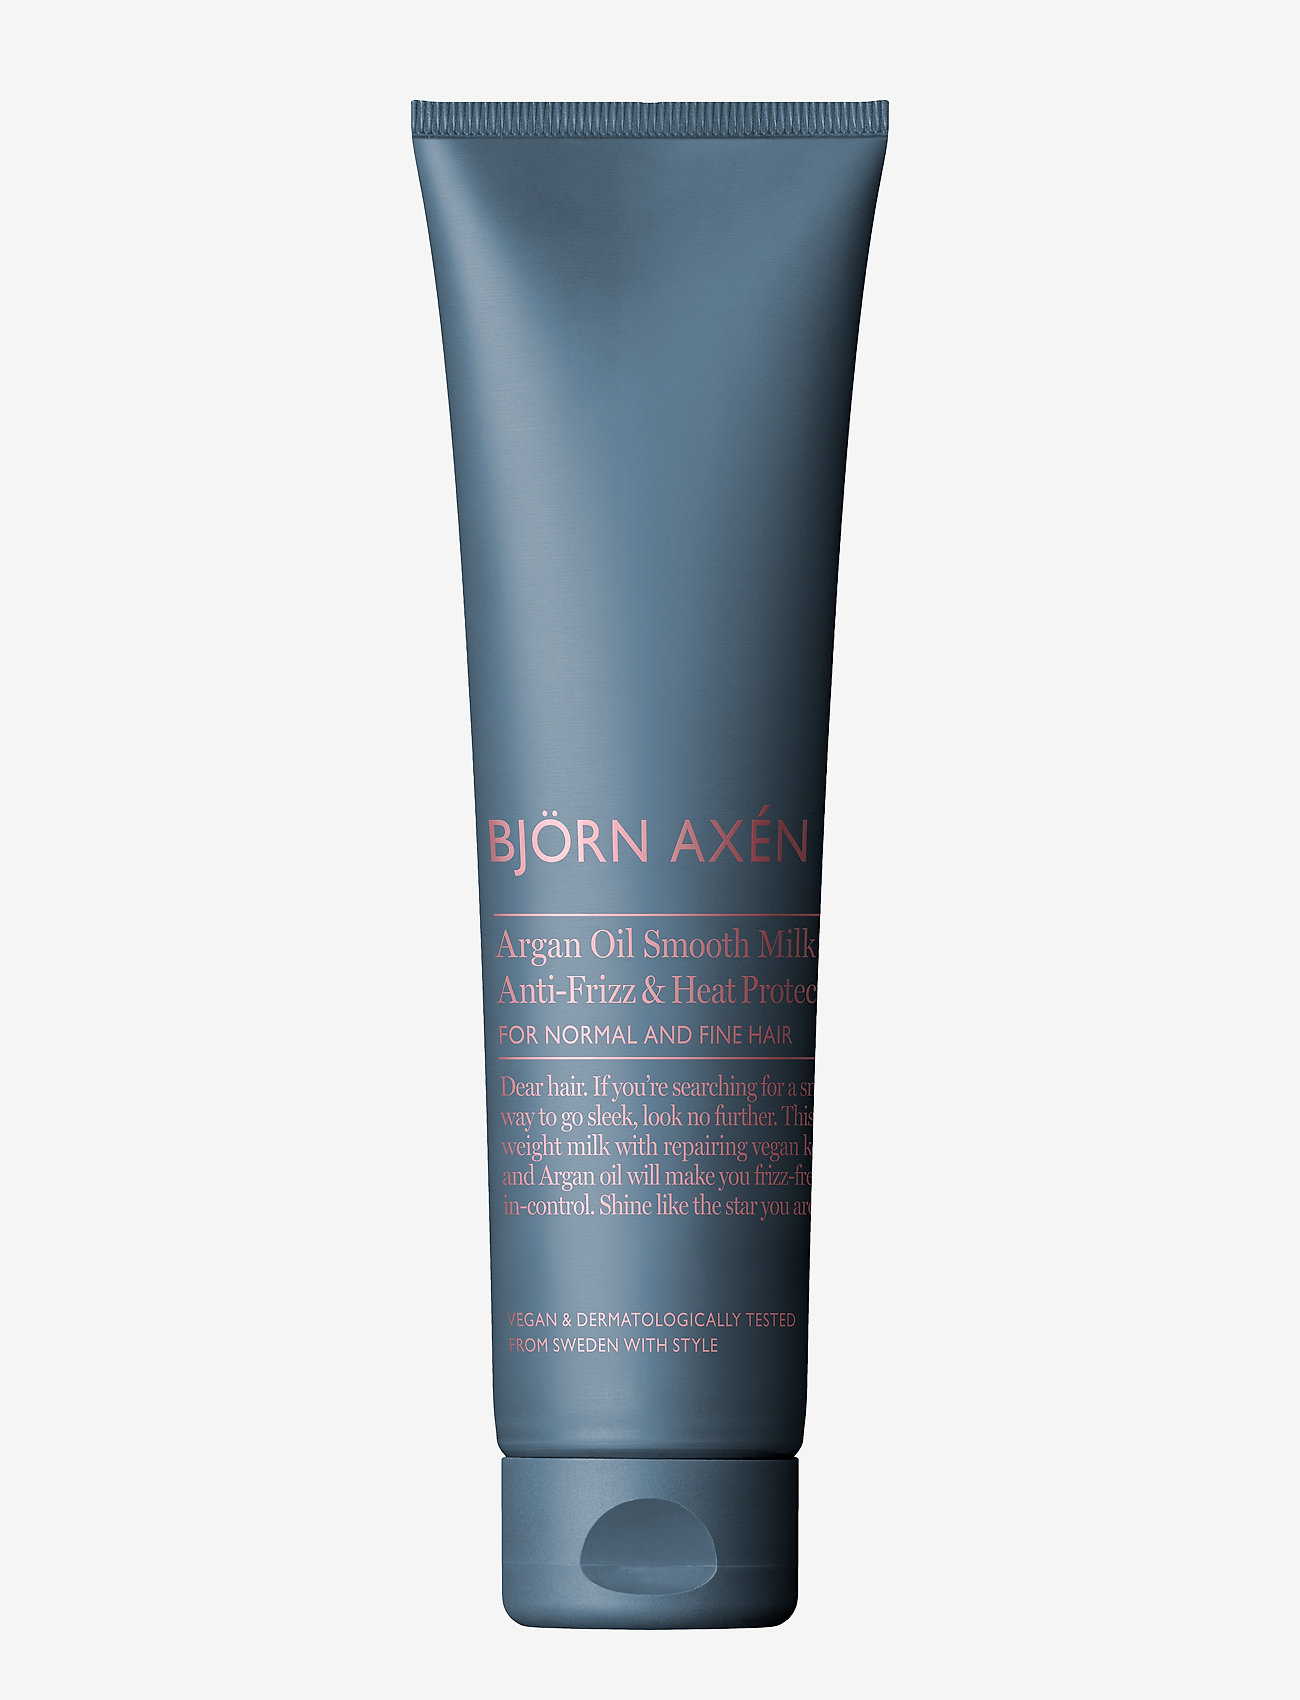 Björn Axén - Argan Oil Smooth Milk, 150 ml - muotoiluvoide - no colour